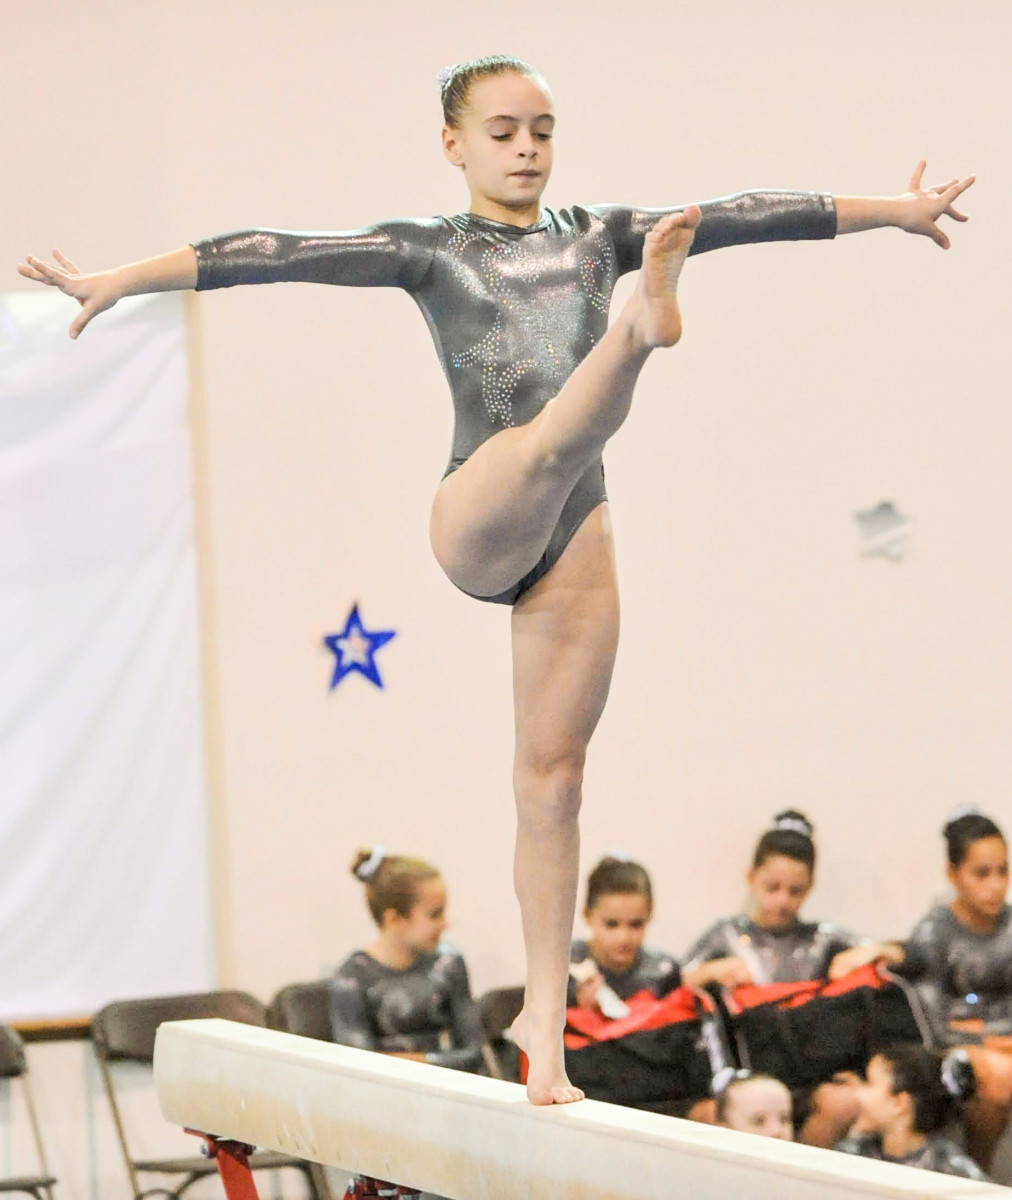 Gallant, 11 years old in this picture, started training at Kurt Thomas Gymnastics in 2005, when she was 7.